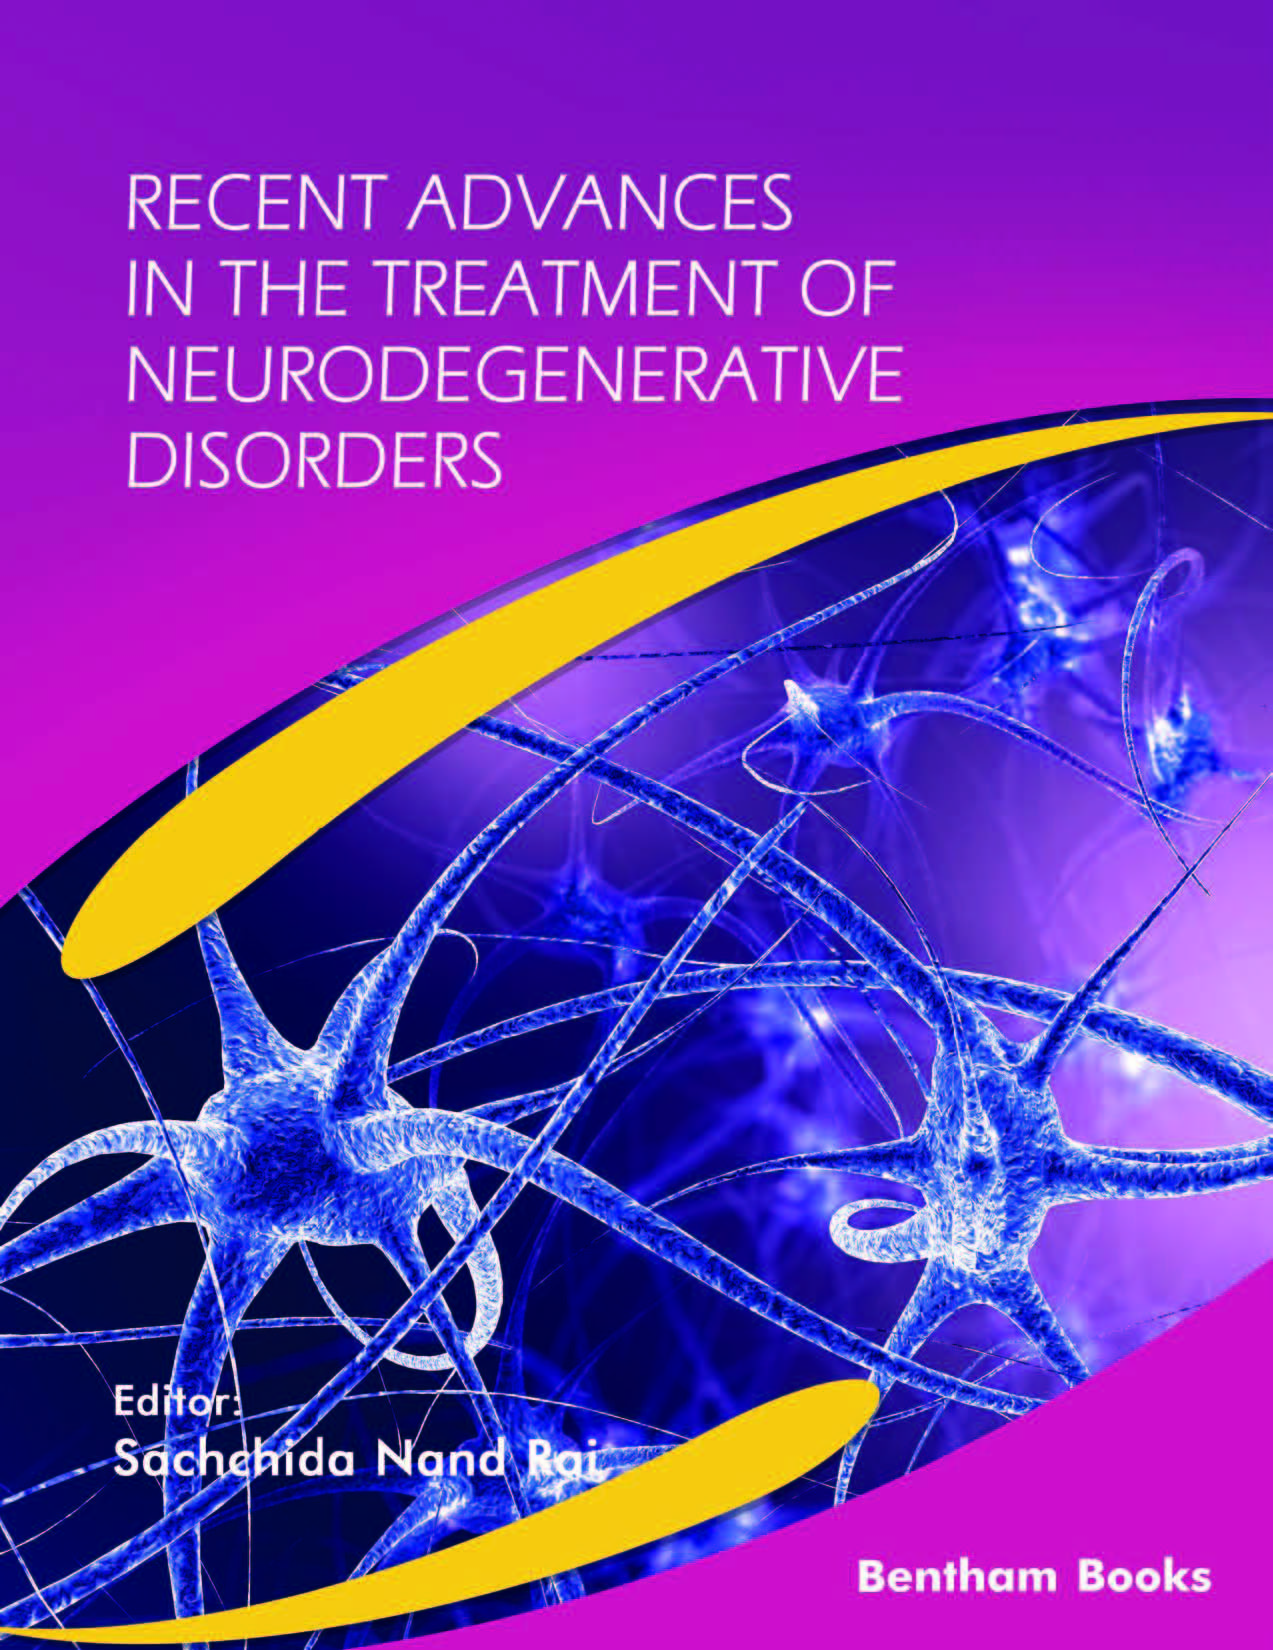 Recent Advances in the Treatment of Neurodegenerative Disorders